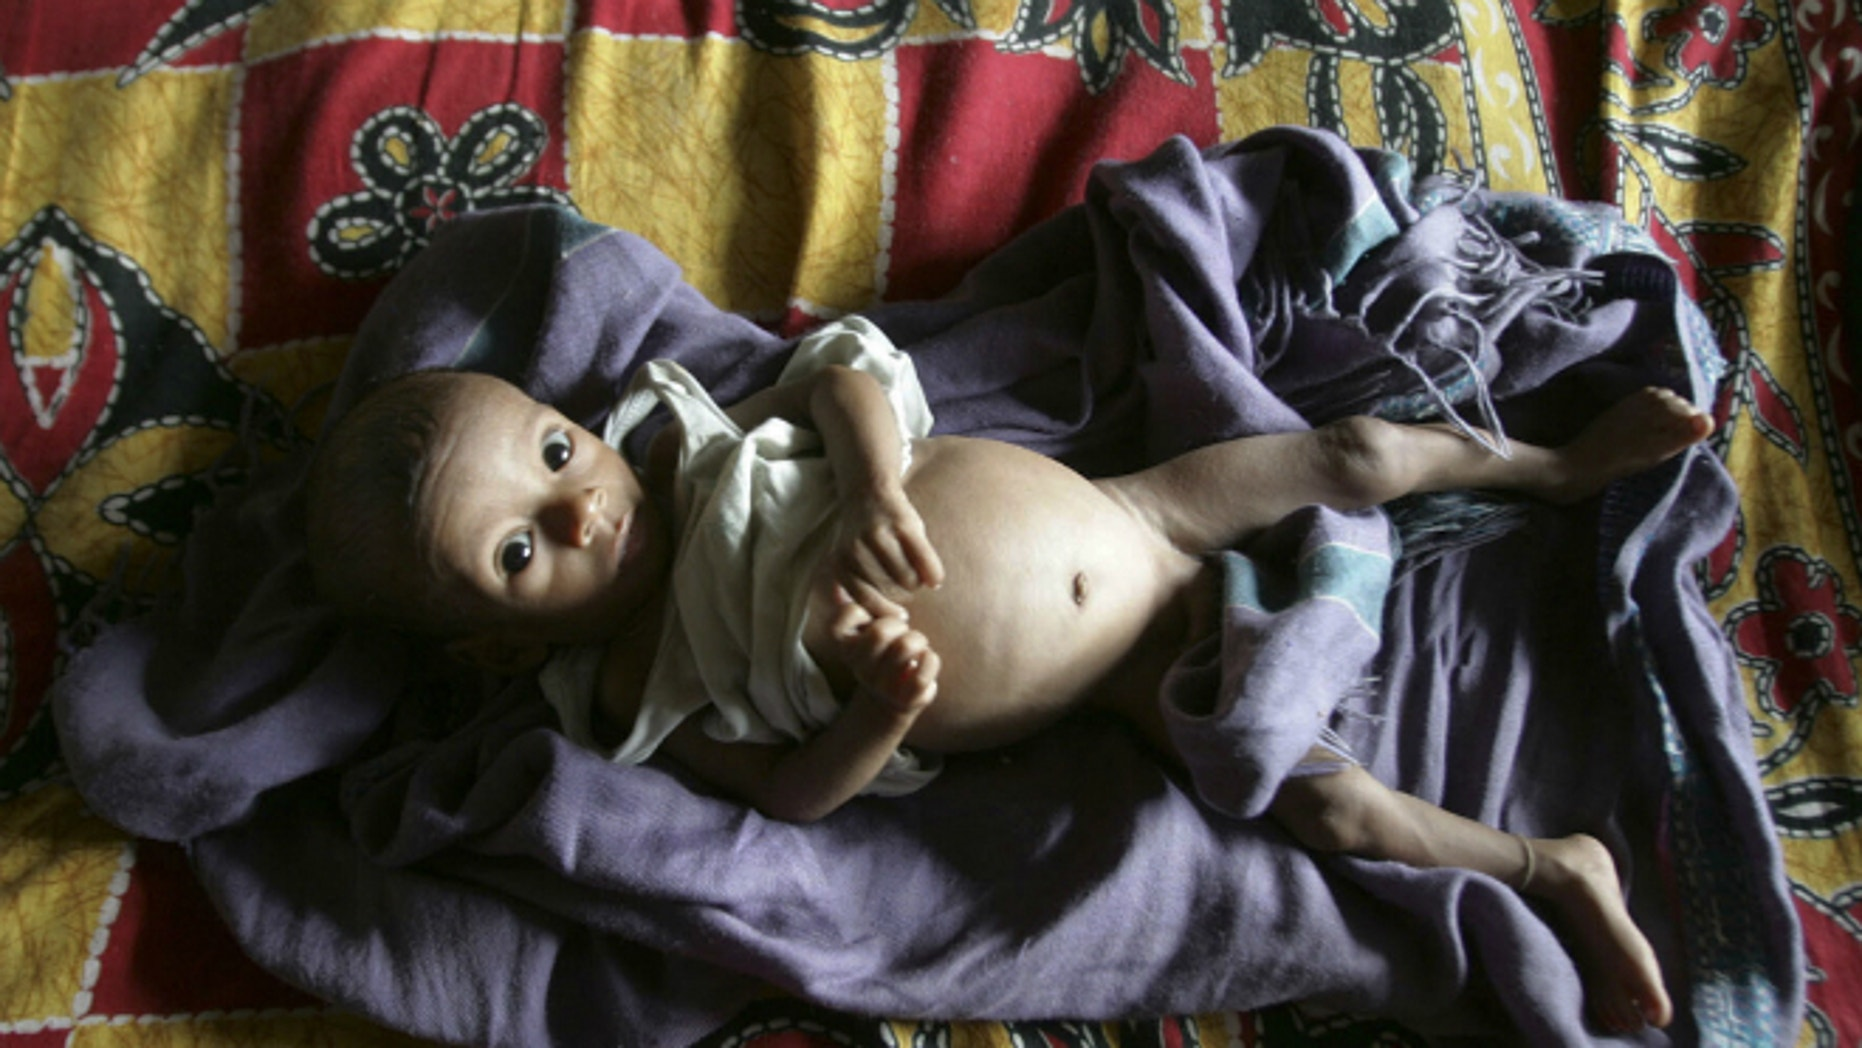 A five-month-old child with tuberculosis rests inside the tuberculosis ward of a hospital in India. (REUTERS/Rupak De Chowdhuri)